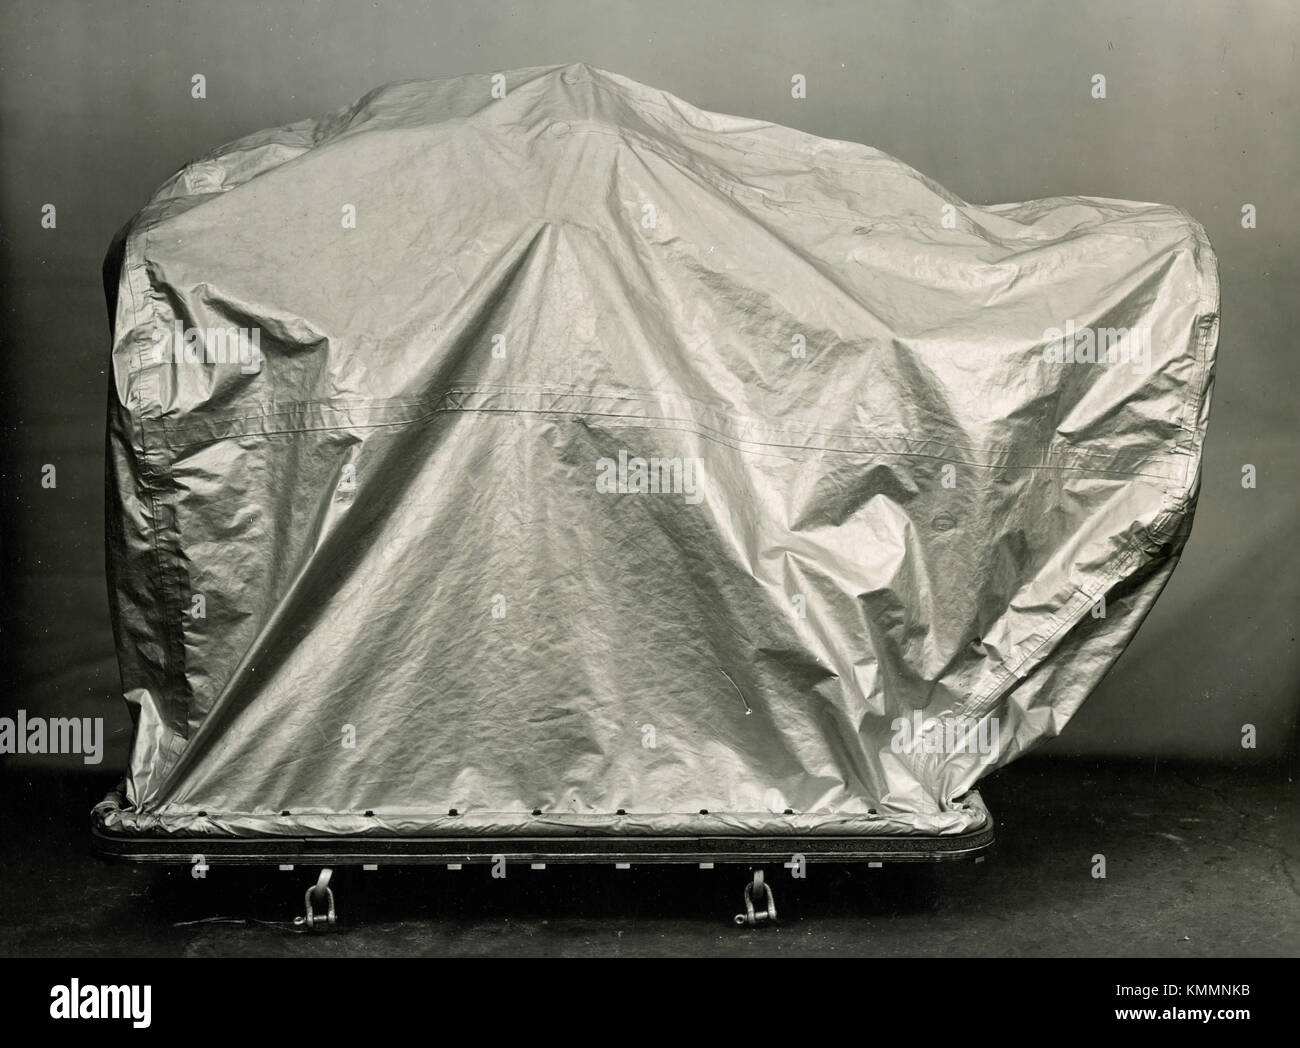 A carefully covered Rolls-Royce aviation engine UK 1940s & A carefully covered Rolls-Royce aviation engine UK 1940s Stock ...